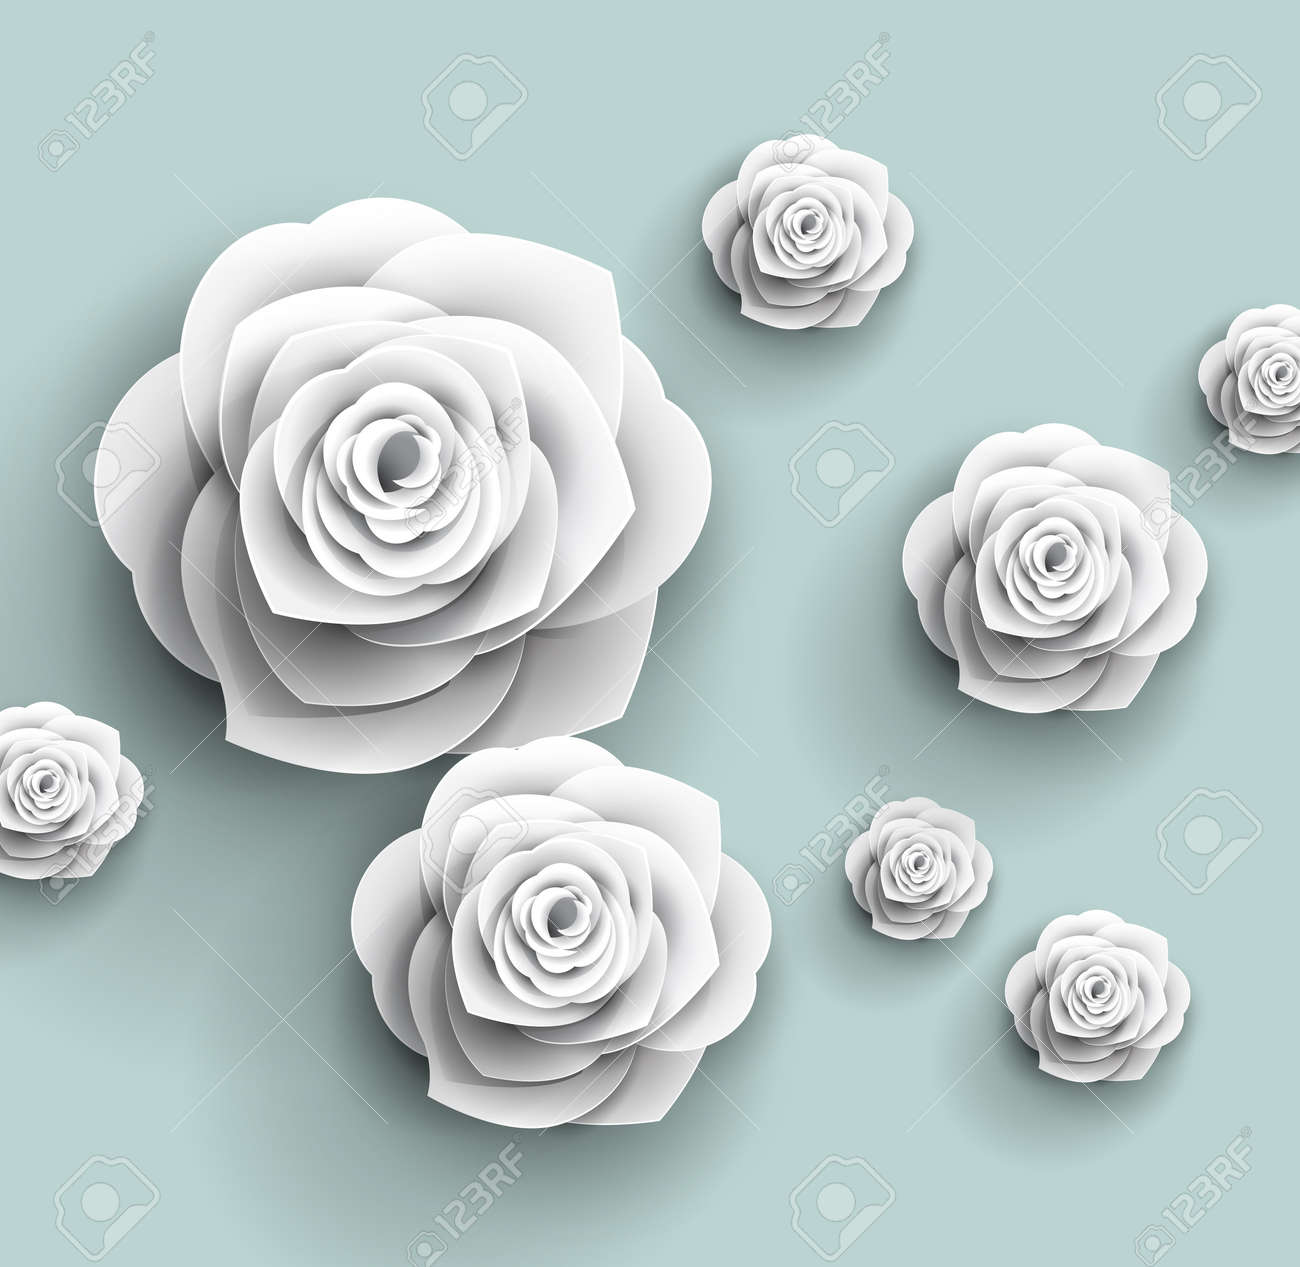 3d Paper Rose Flowers Vector Abstract Background Royalty Free